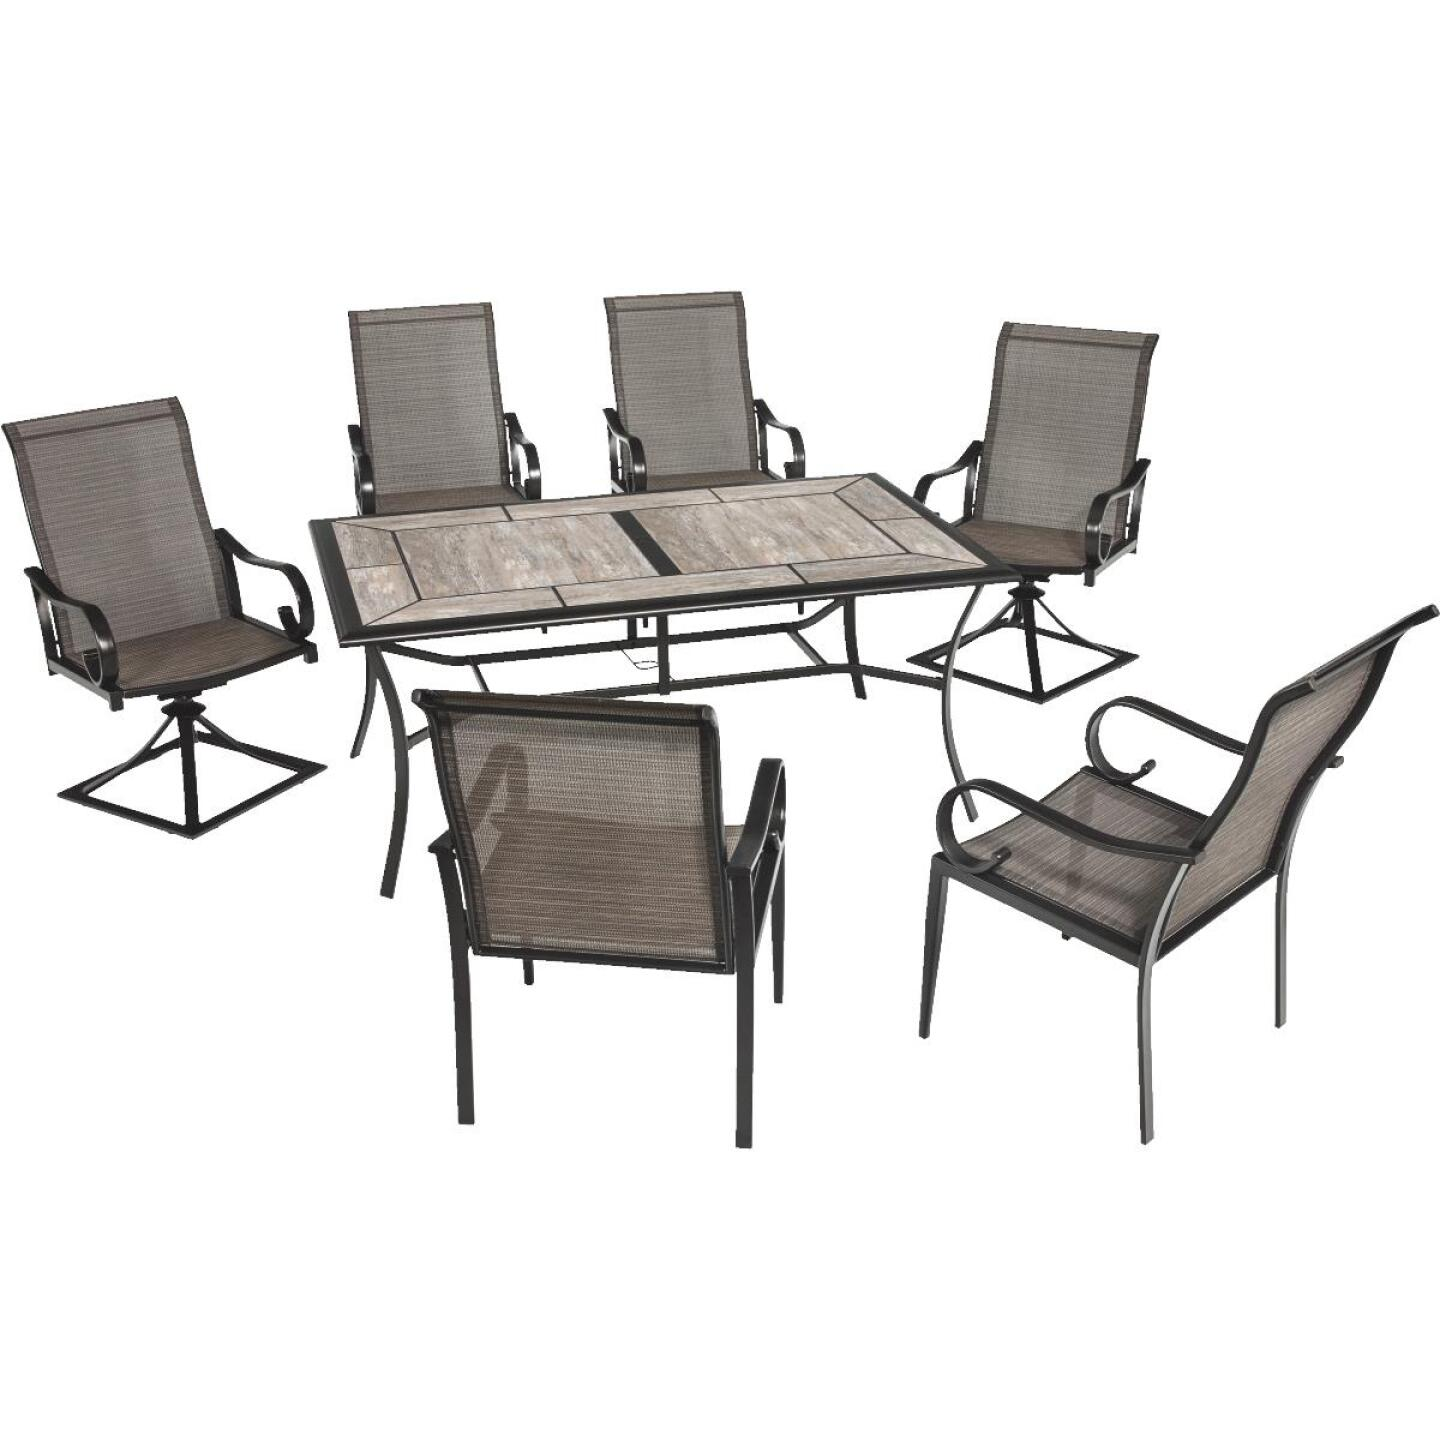 Outdoor Expressions Berkshire 7-Piece Dining Set Image 324